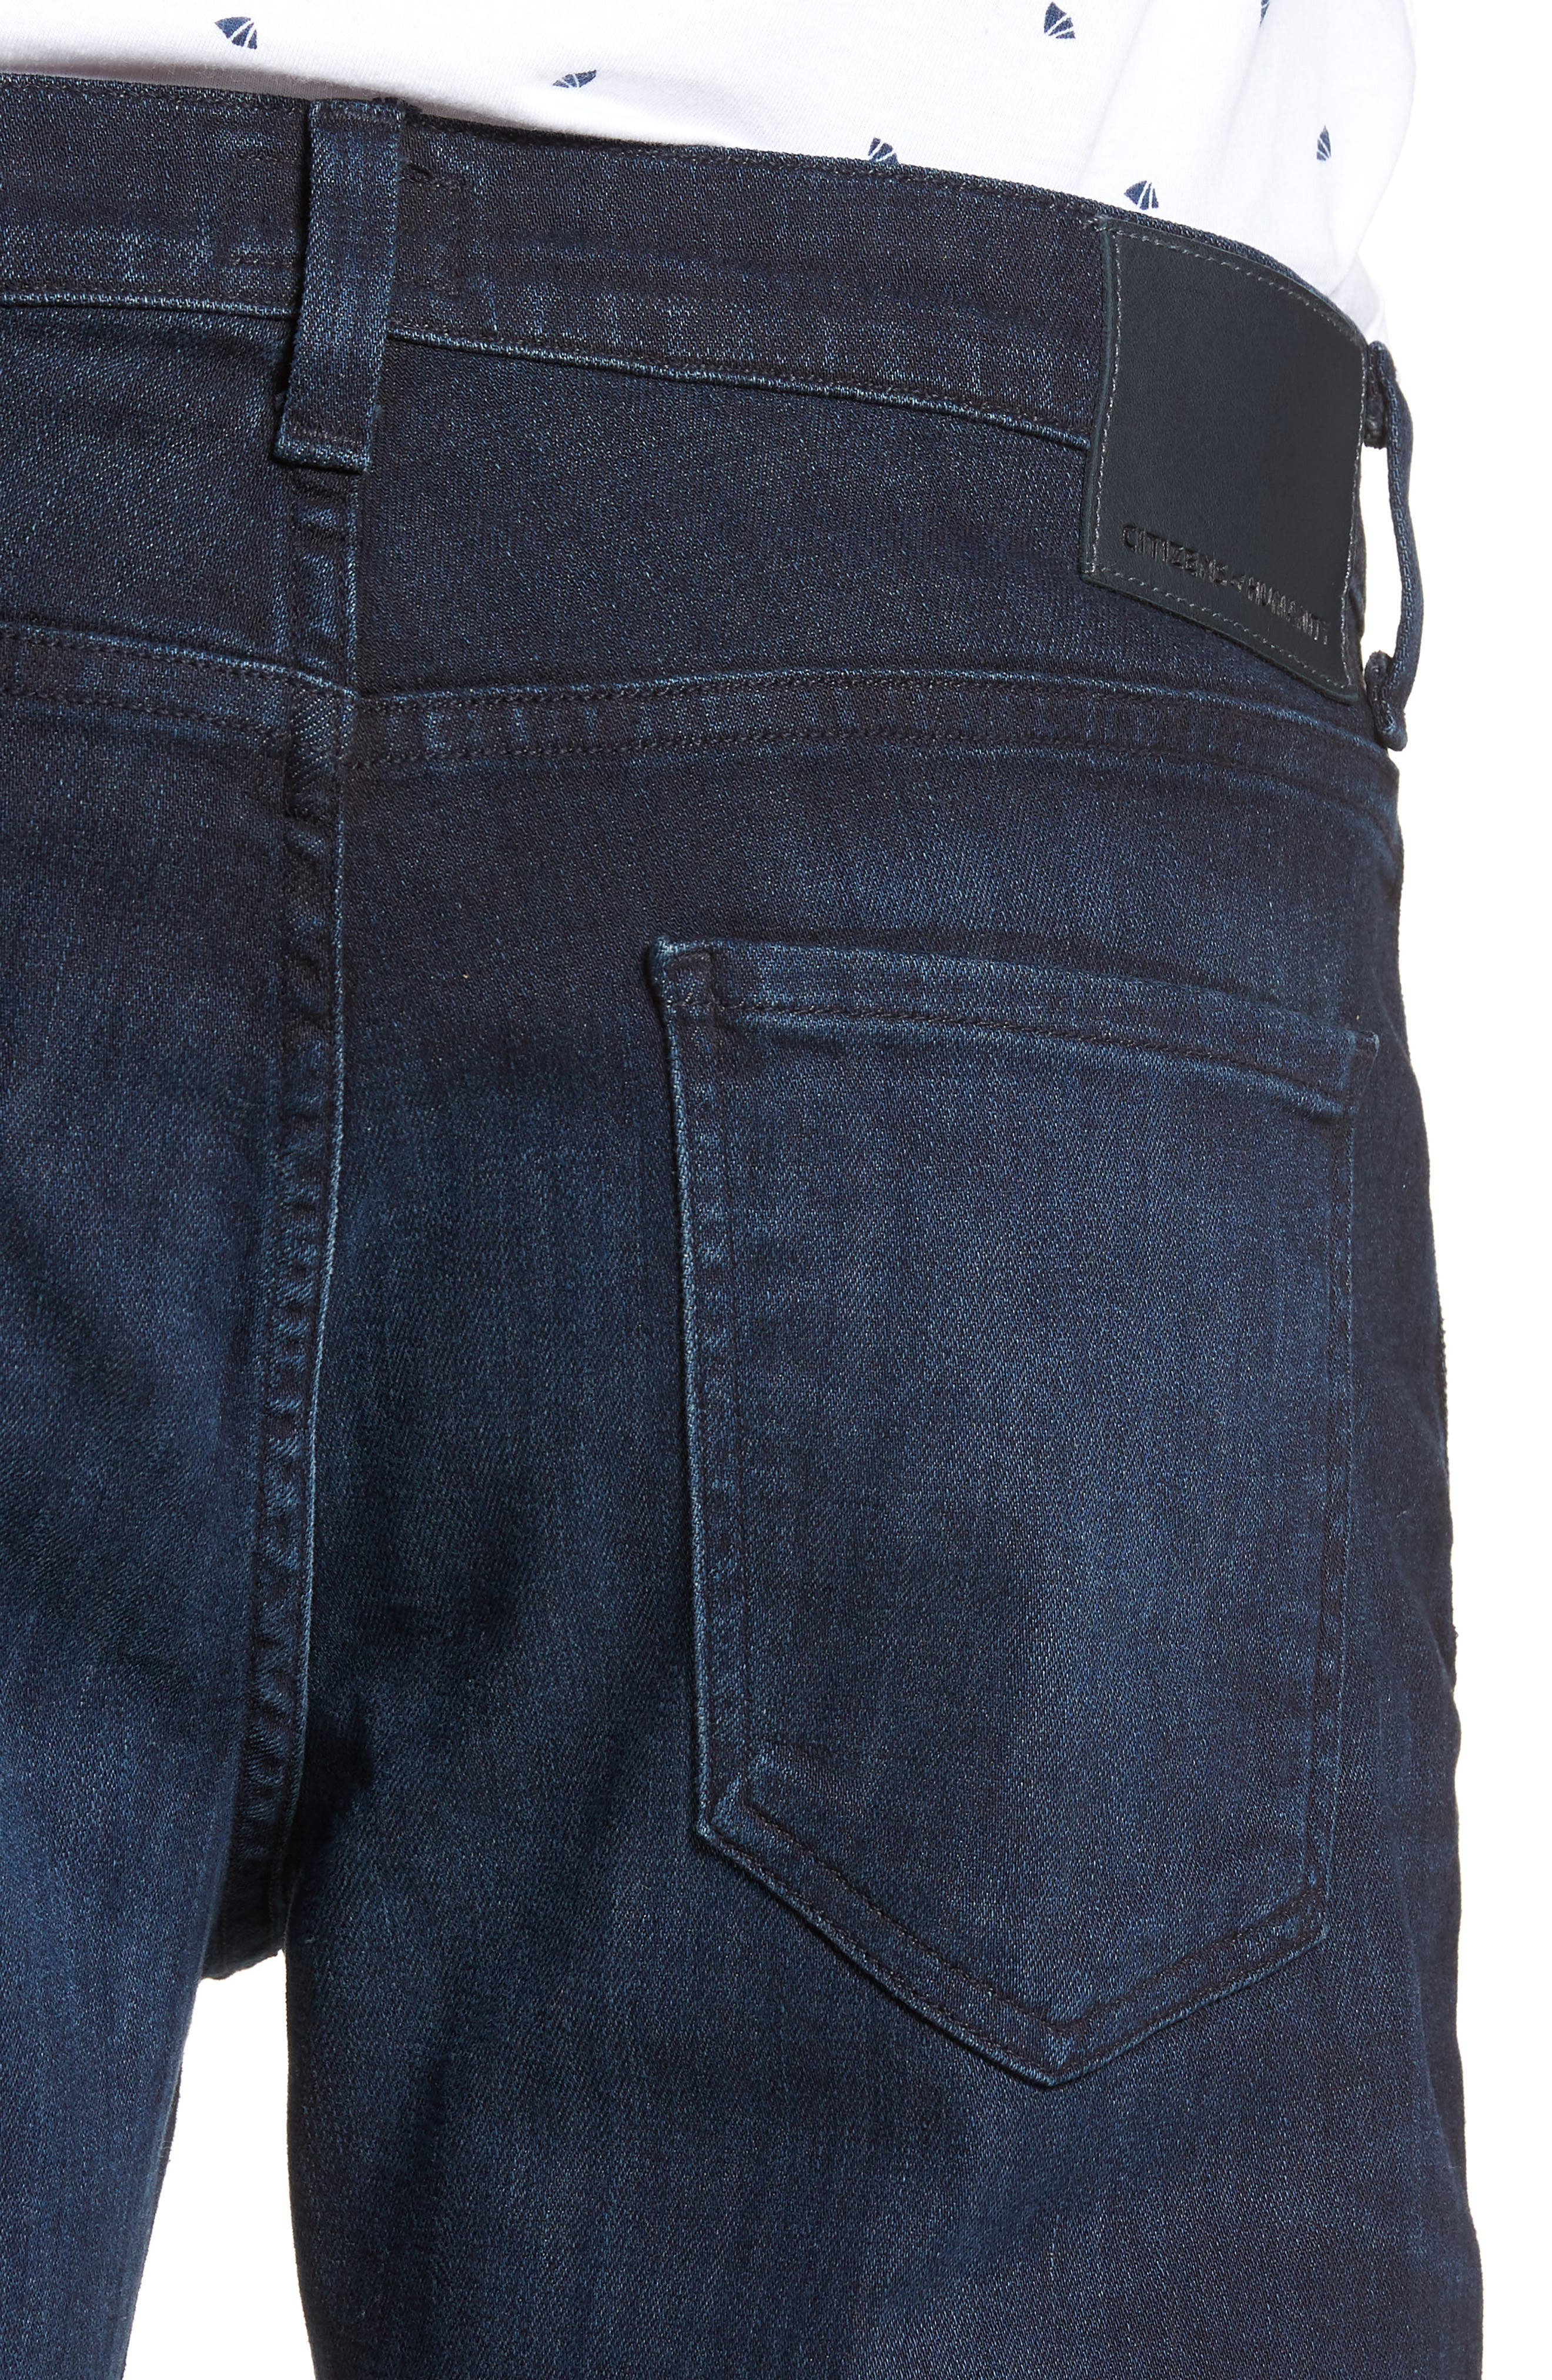 Gage Slim Straight Leg Jeans,                             Alternate thumbnail 4, color,                             Geary